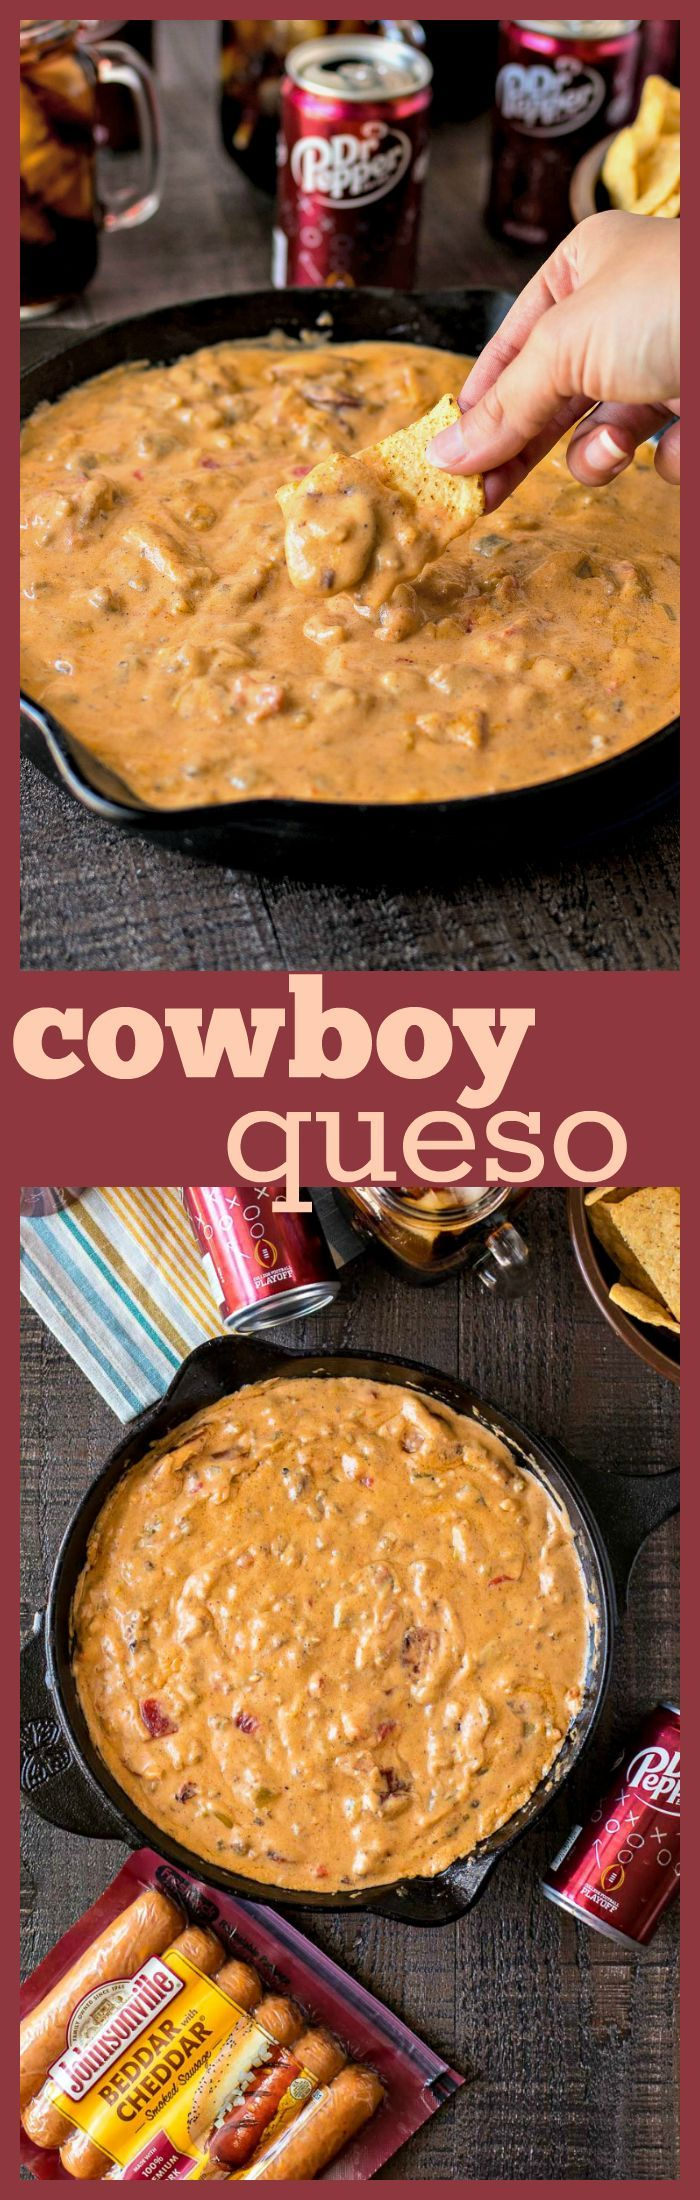 #ad Cowboy Queso – A chunky queso dip with chopped green chiles, roasted tomatoes, ground sausage, and sliced smoked cheddar sausage. The best dip to feed a hungry crowd during a tailgate. Perfectly pairs with ice-cold Dr Pepper! @drpepper @jvillesausage